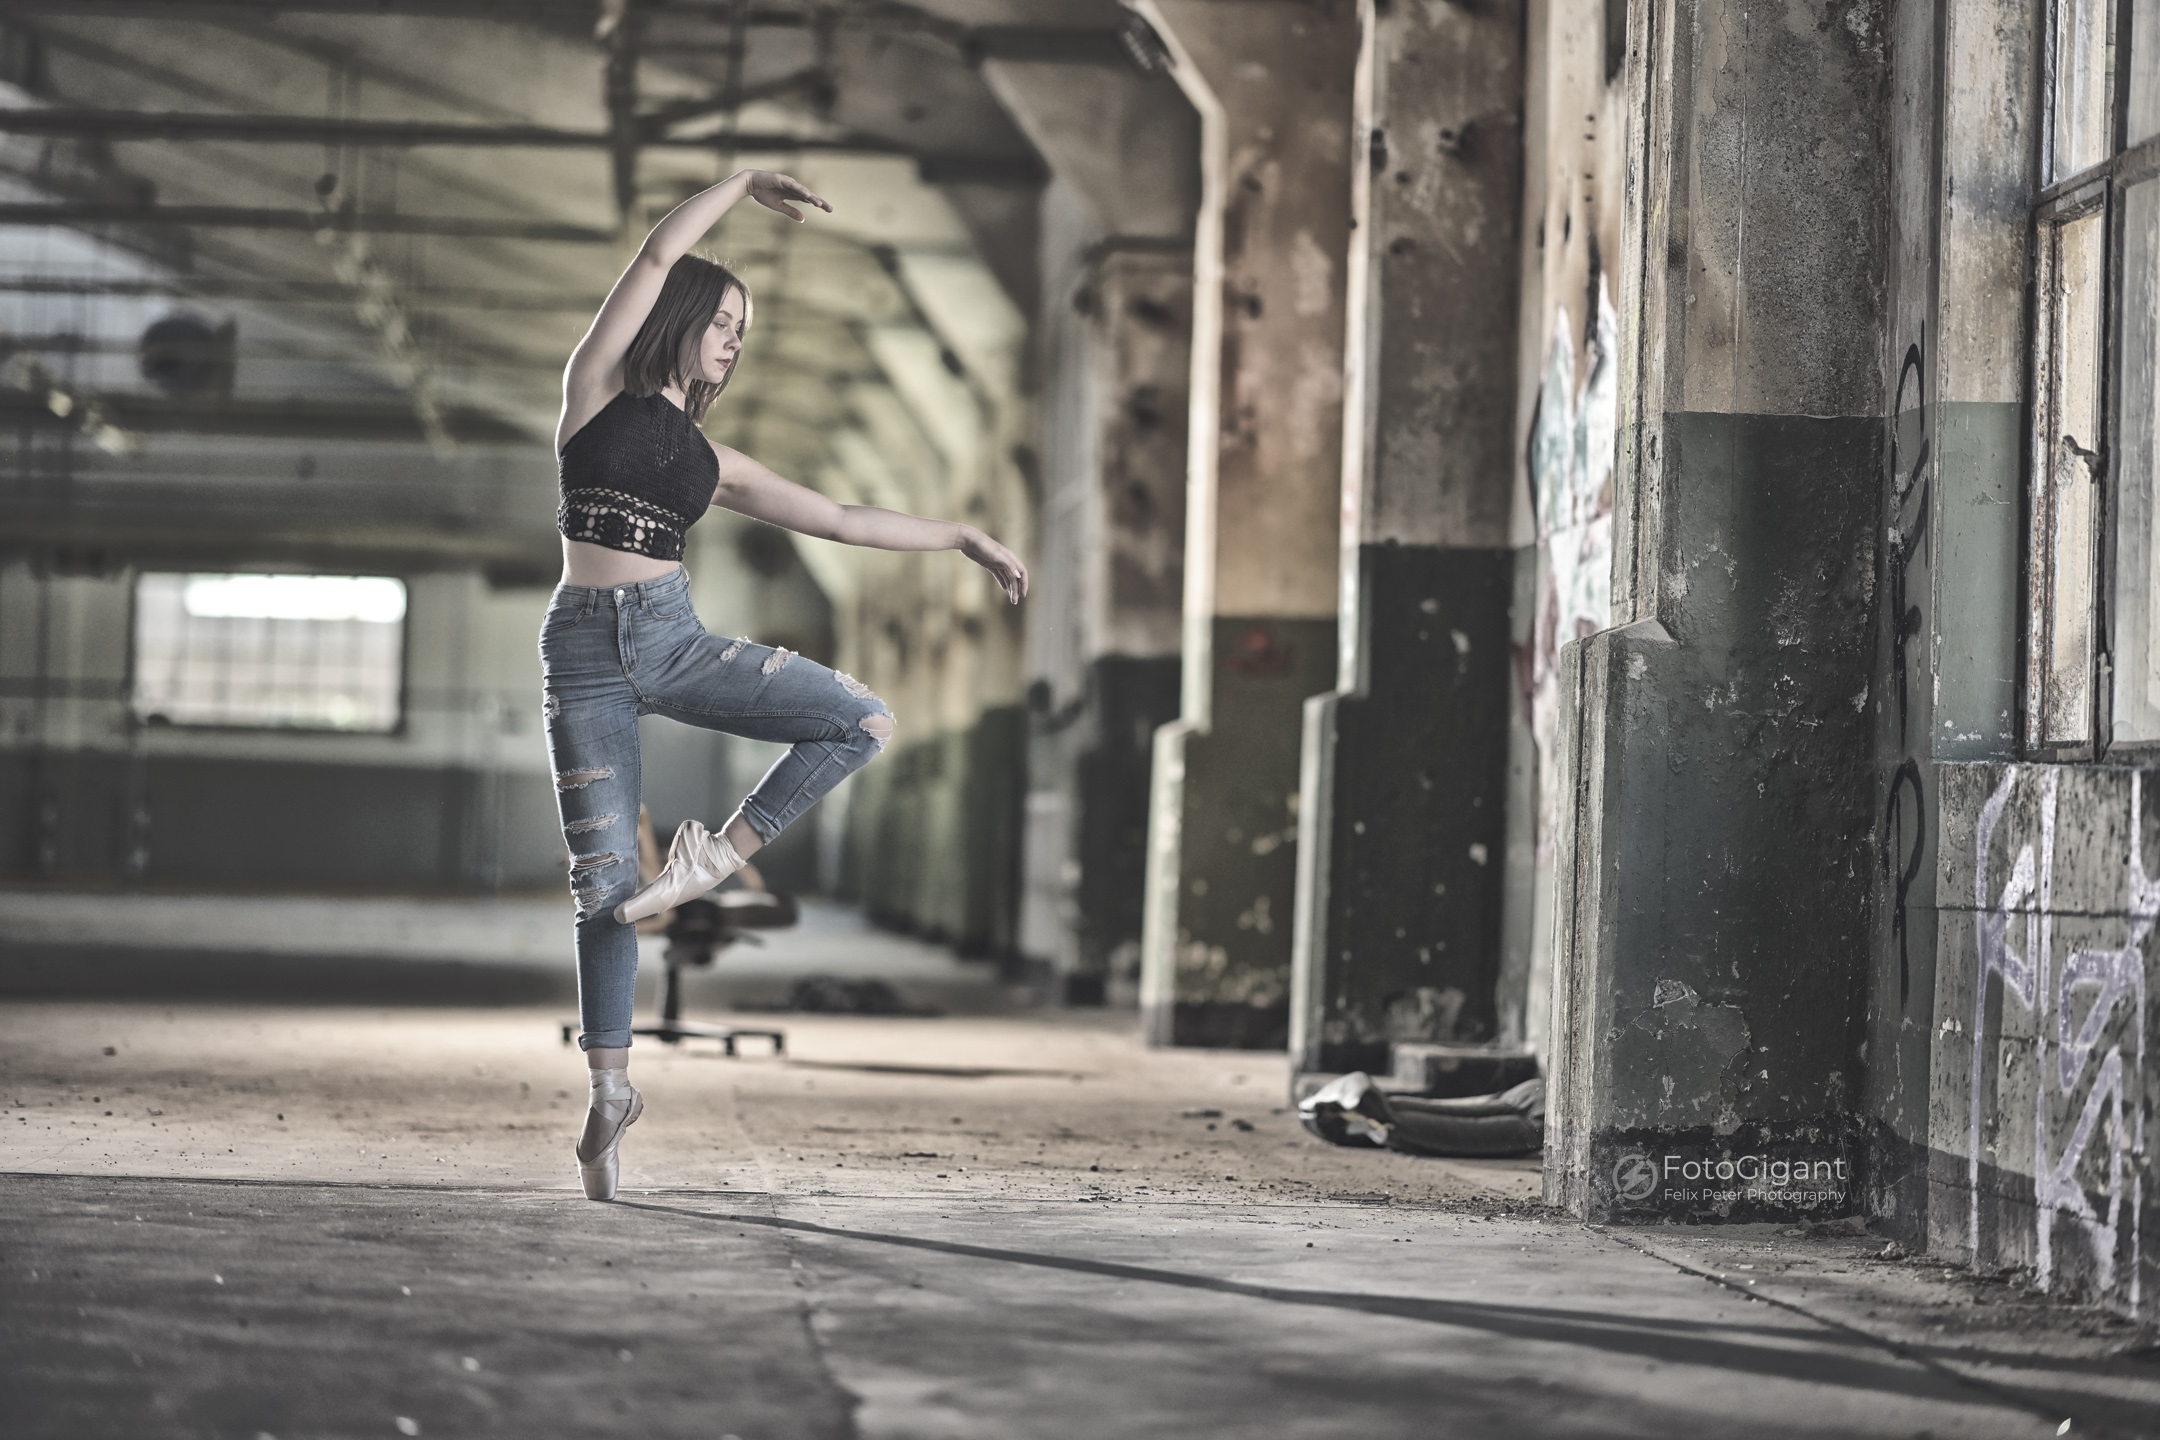 Balletdancer_in_Lostplace_05.jpg